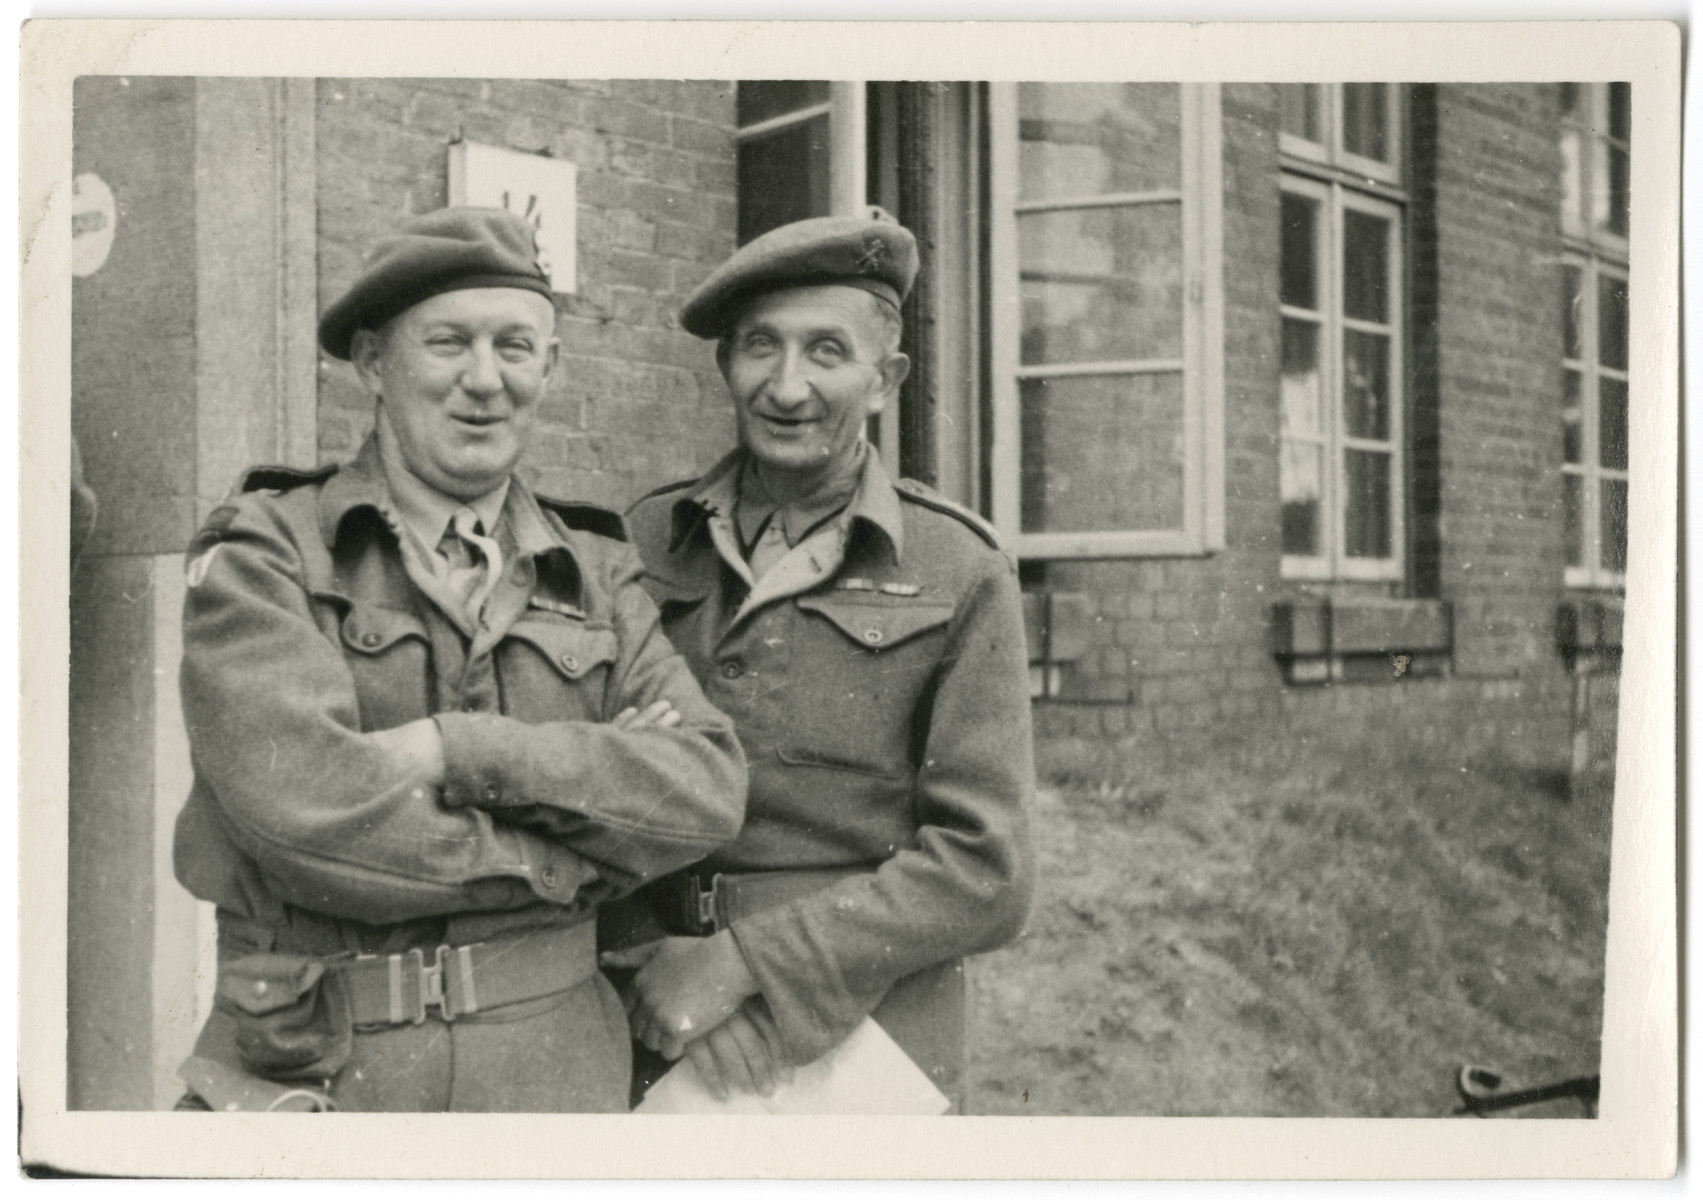 Lt. Marcel Frank (right) poses with Captain Greaves in Lueneburg, Germany.